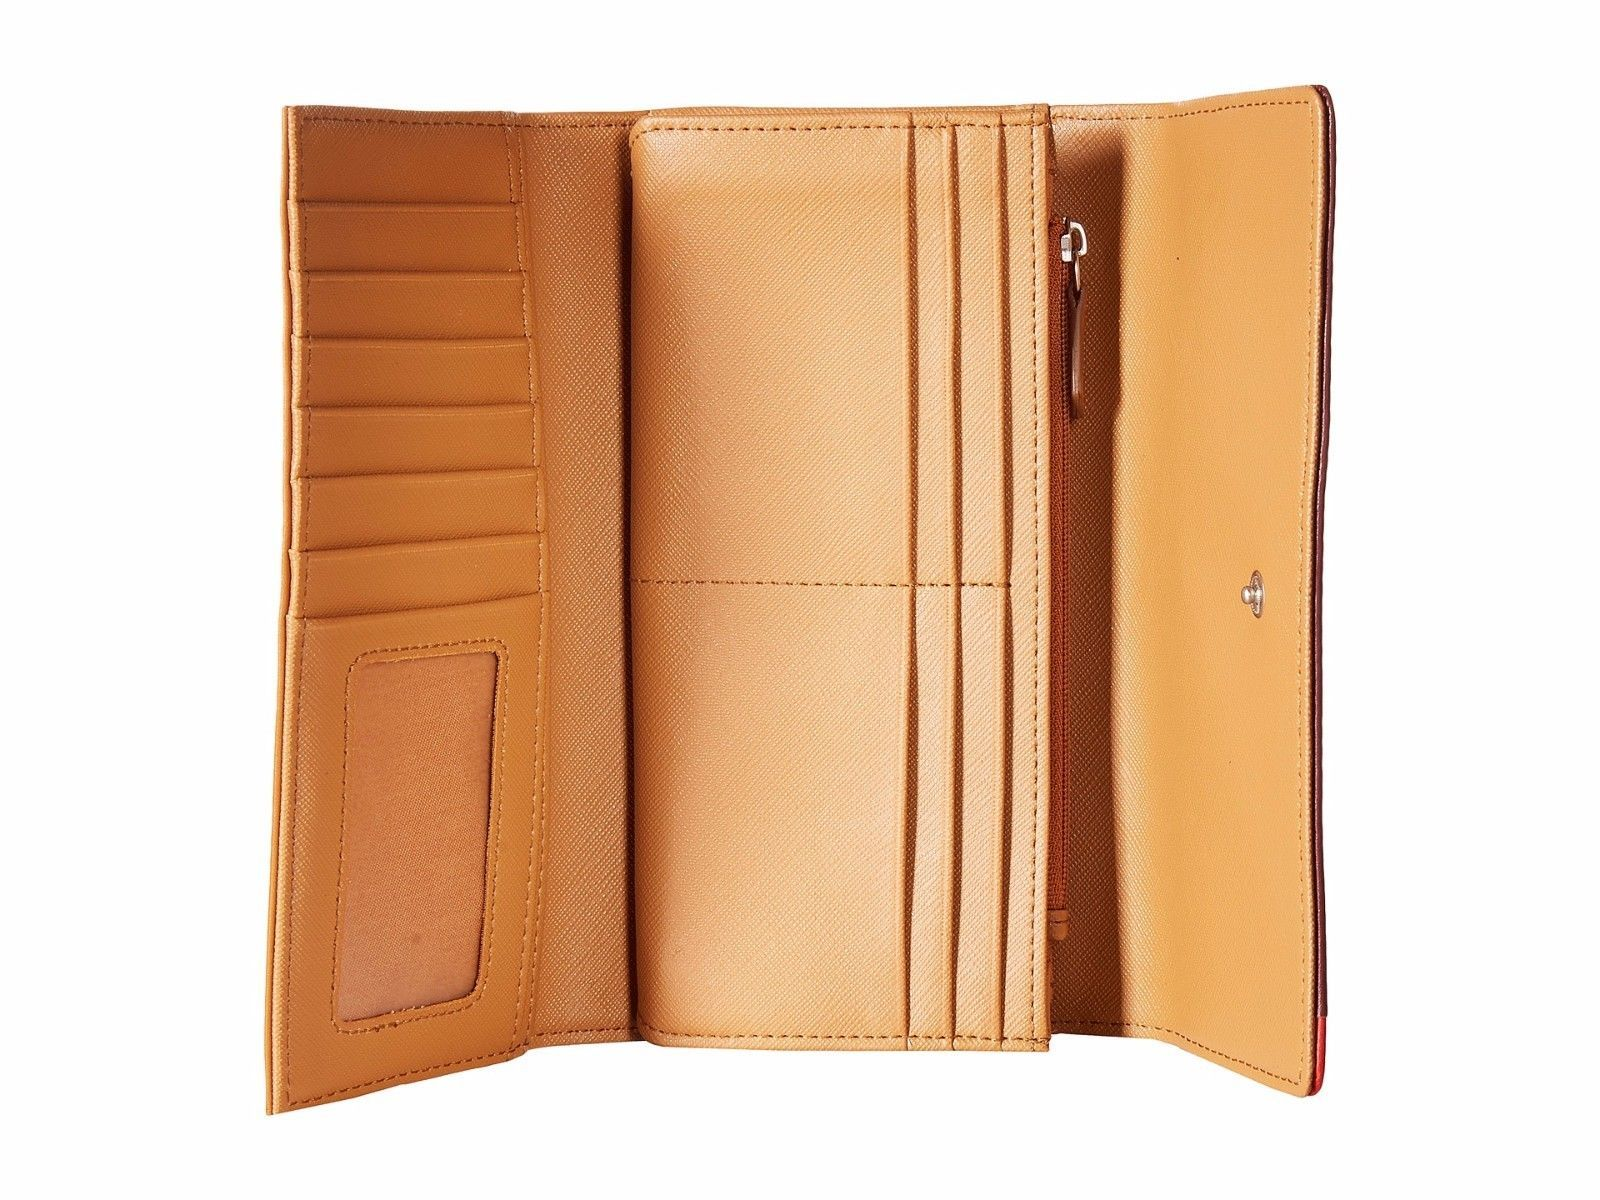 New Fossil Dawson Women Flap Leather Clutch Variety Color image 9